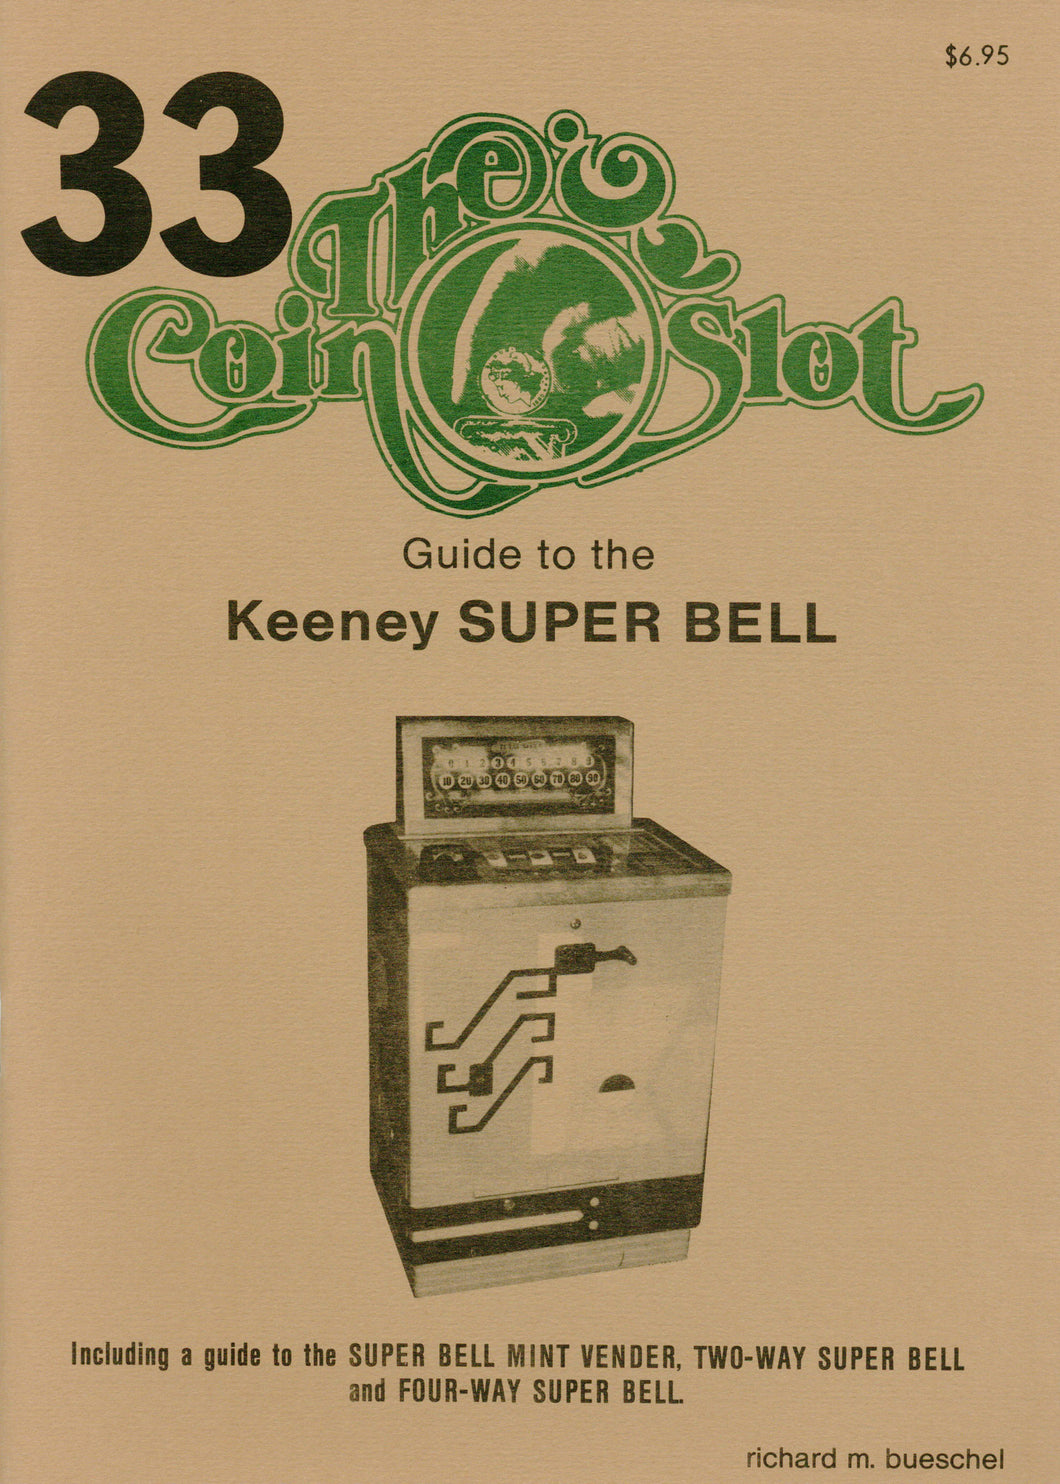 Coin Slot #33. Guide to the Keeney Super Bell